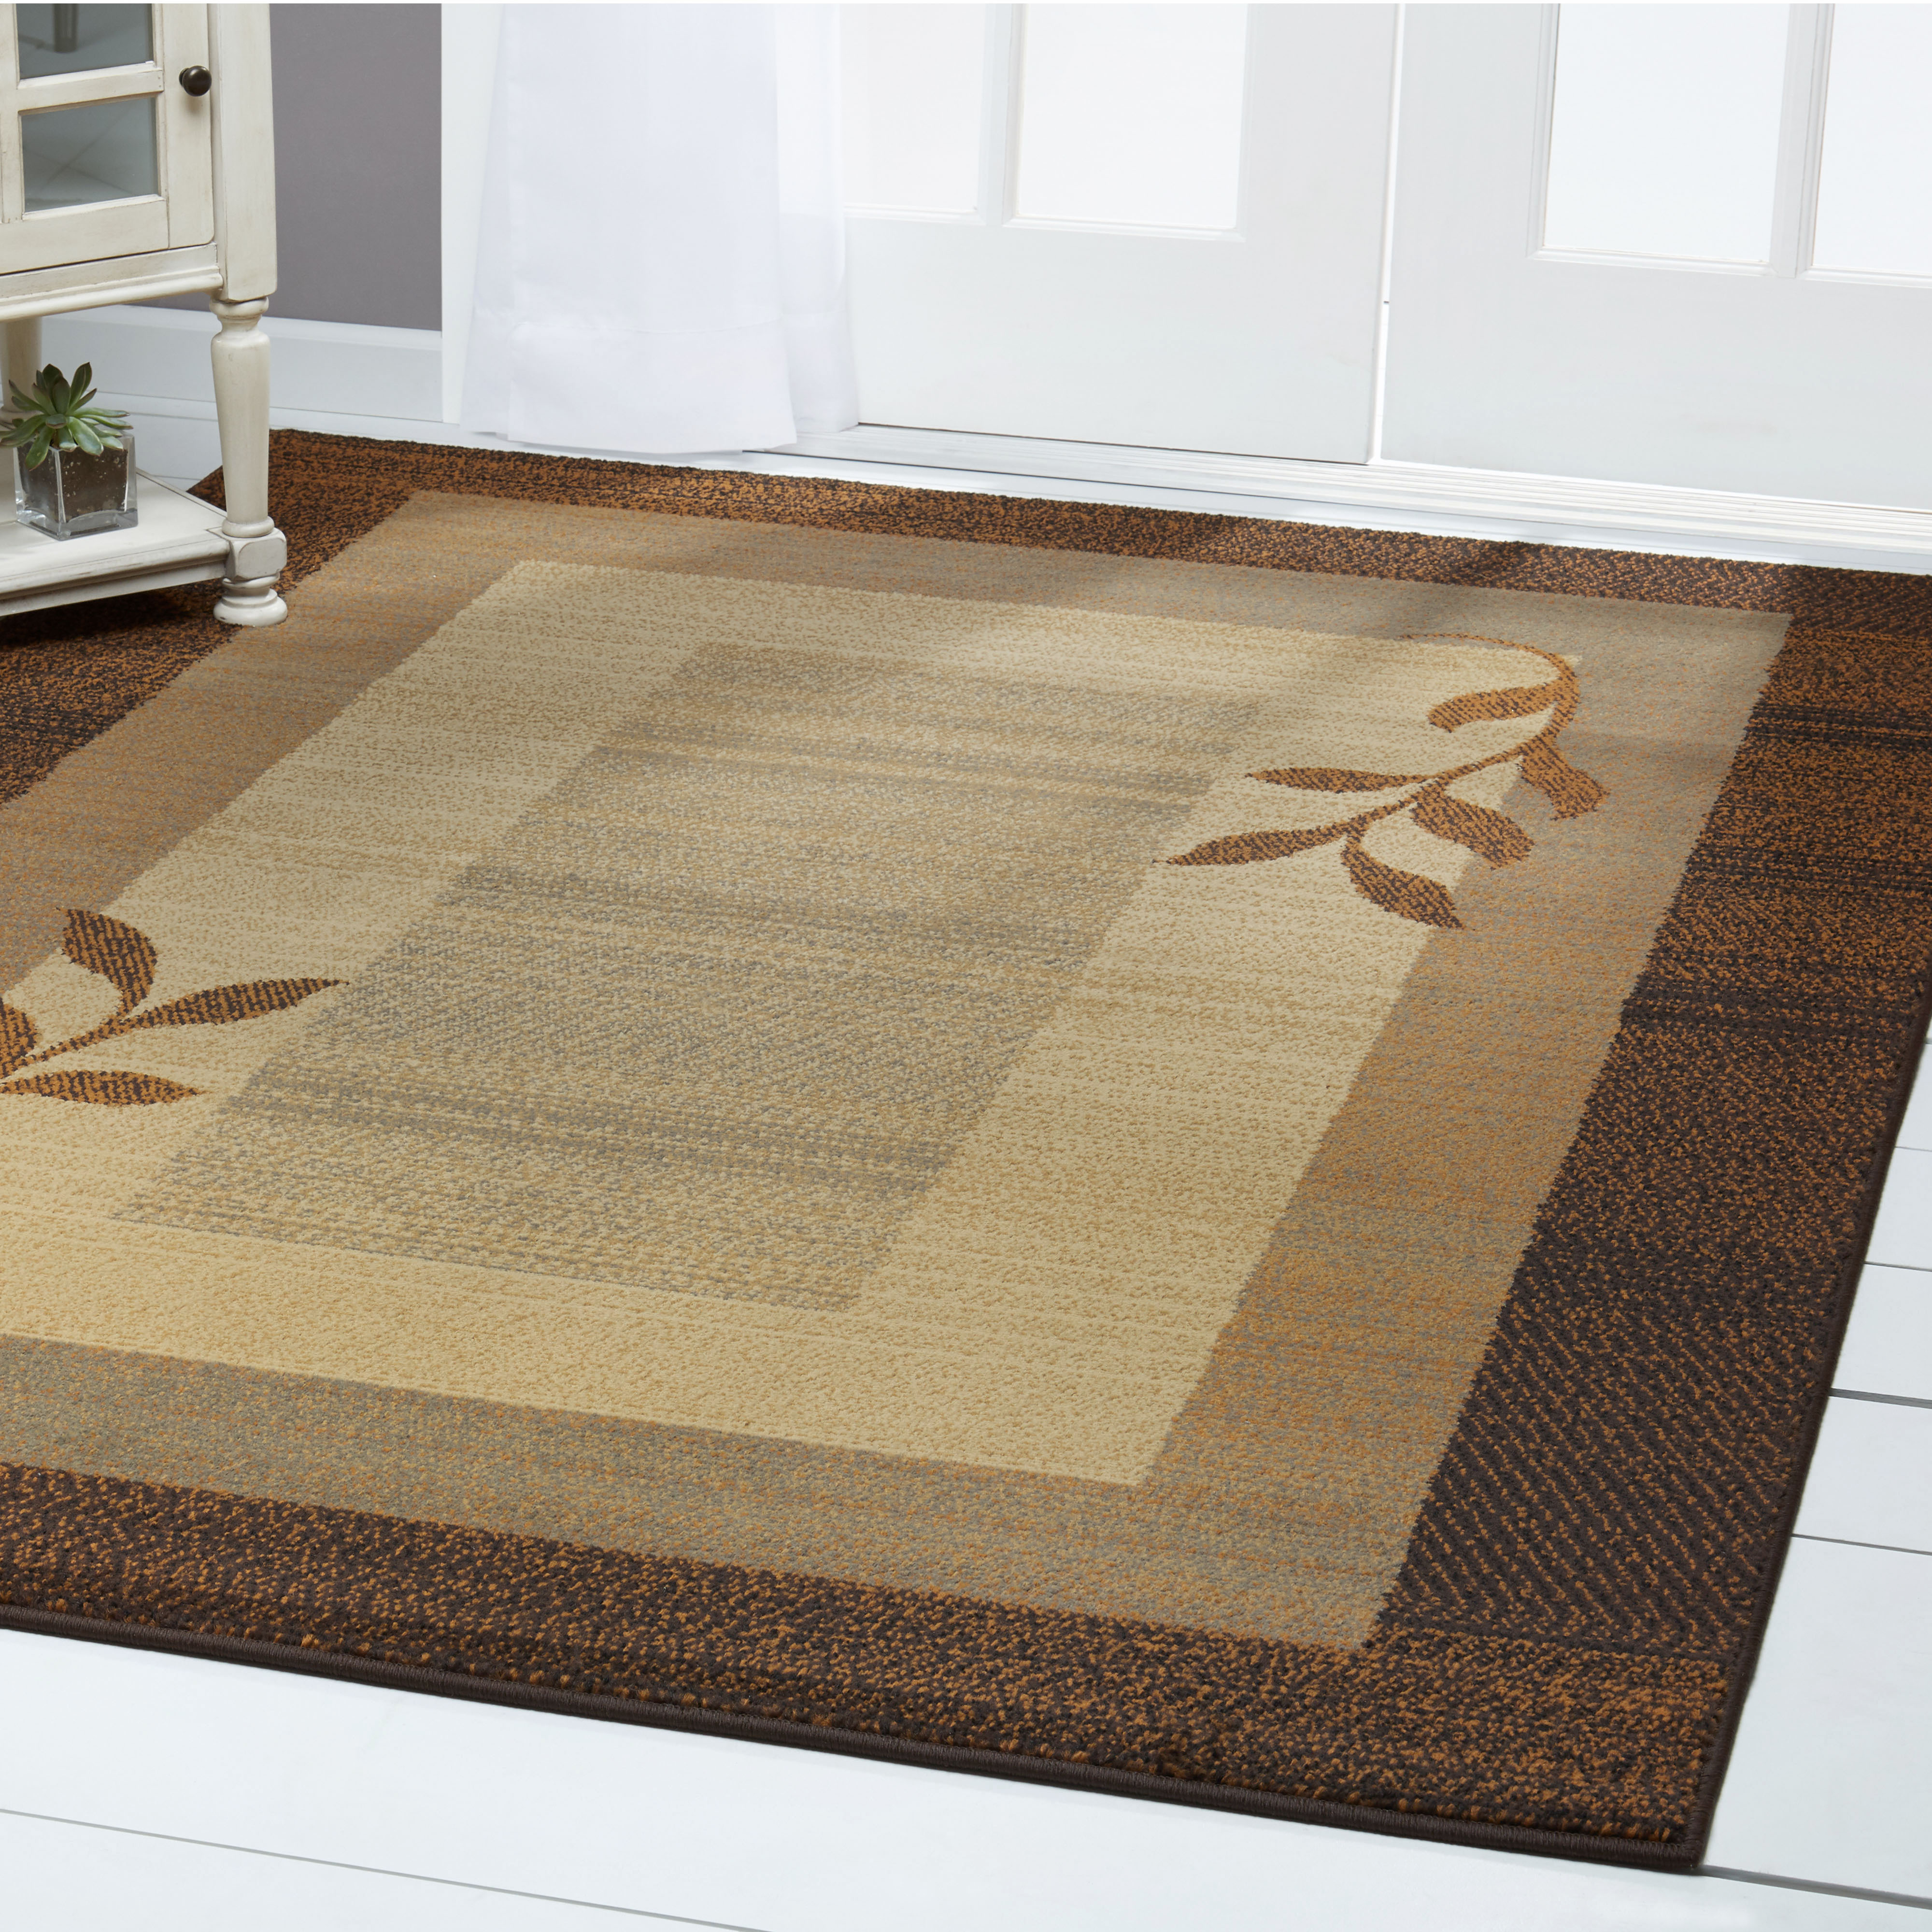 Home Dynamix Royalty Collection Transitional Brown Blue Area Rug for Modern Home Decor by Home Dynamix